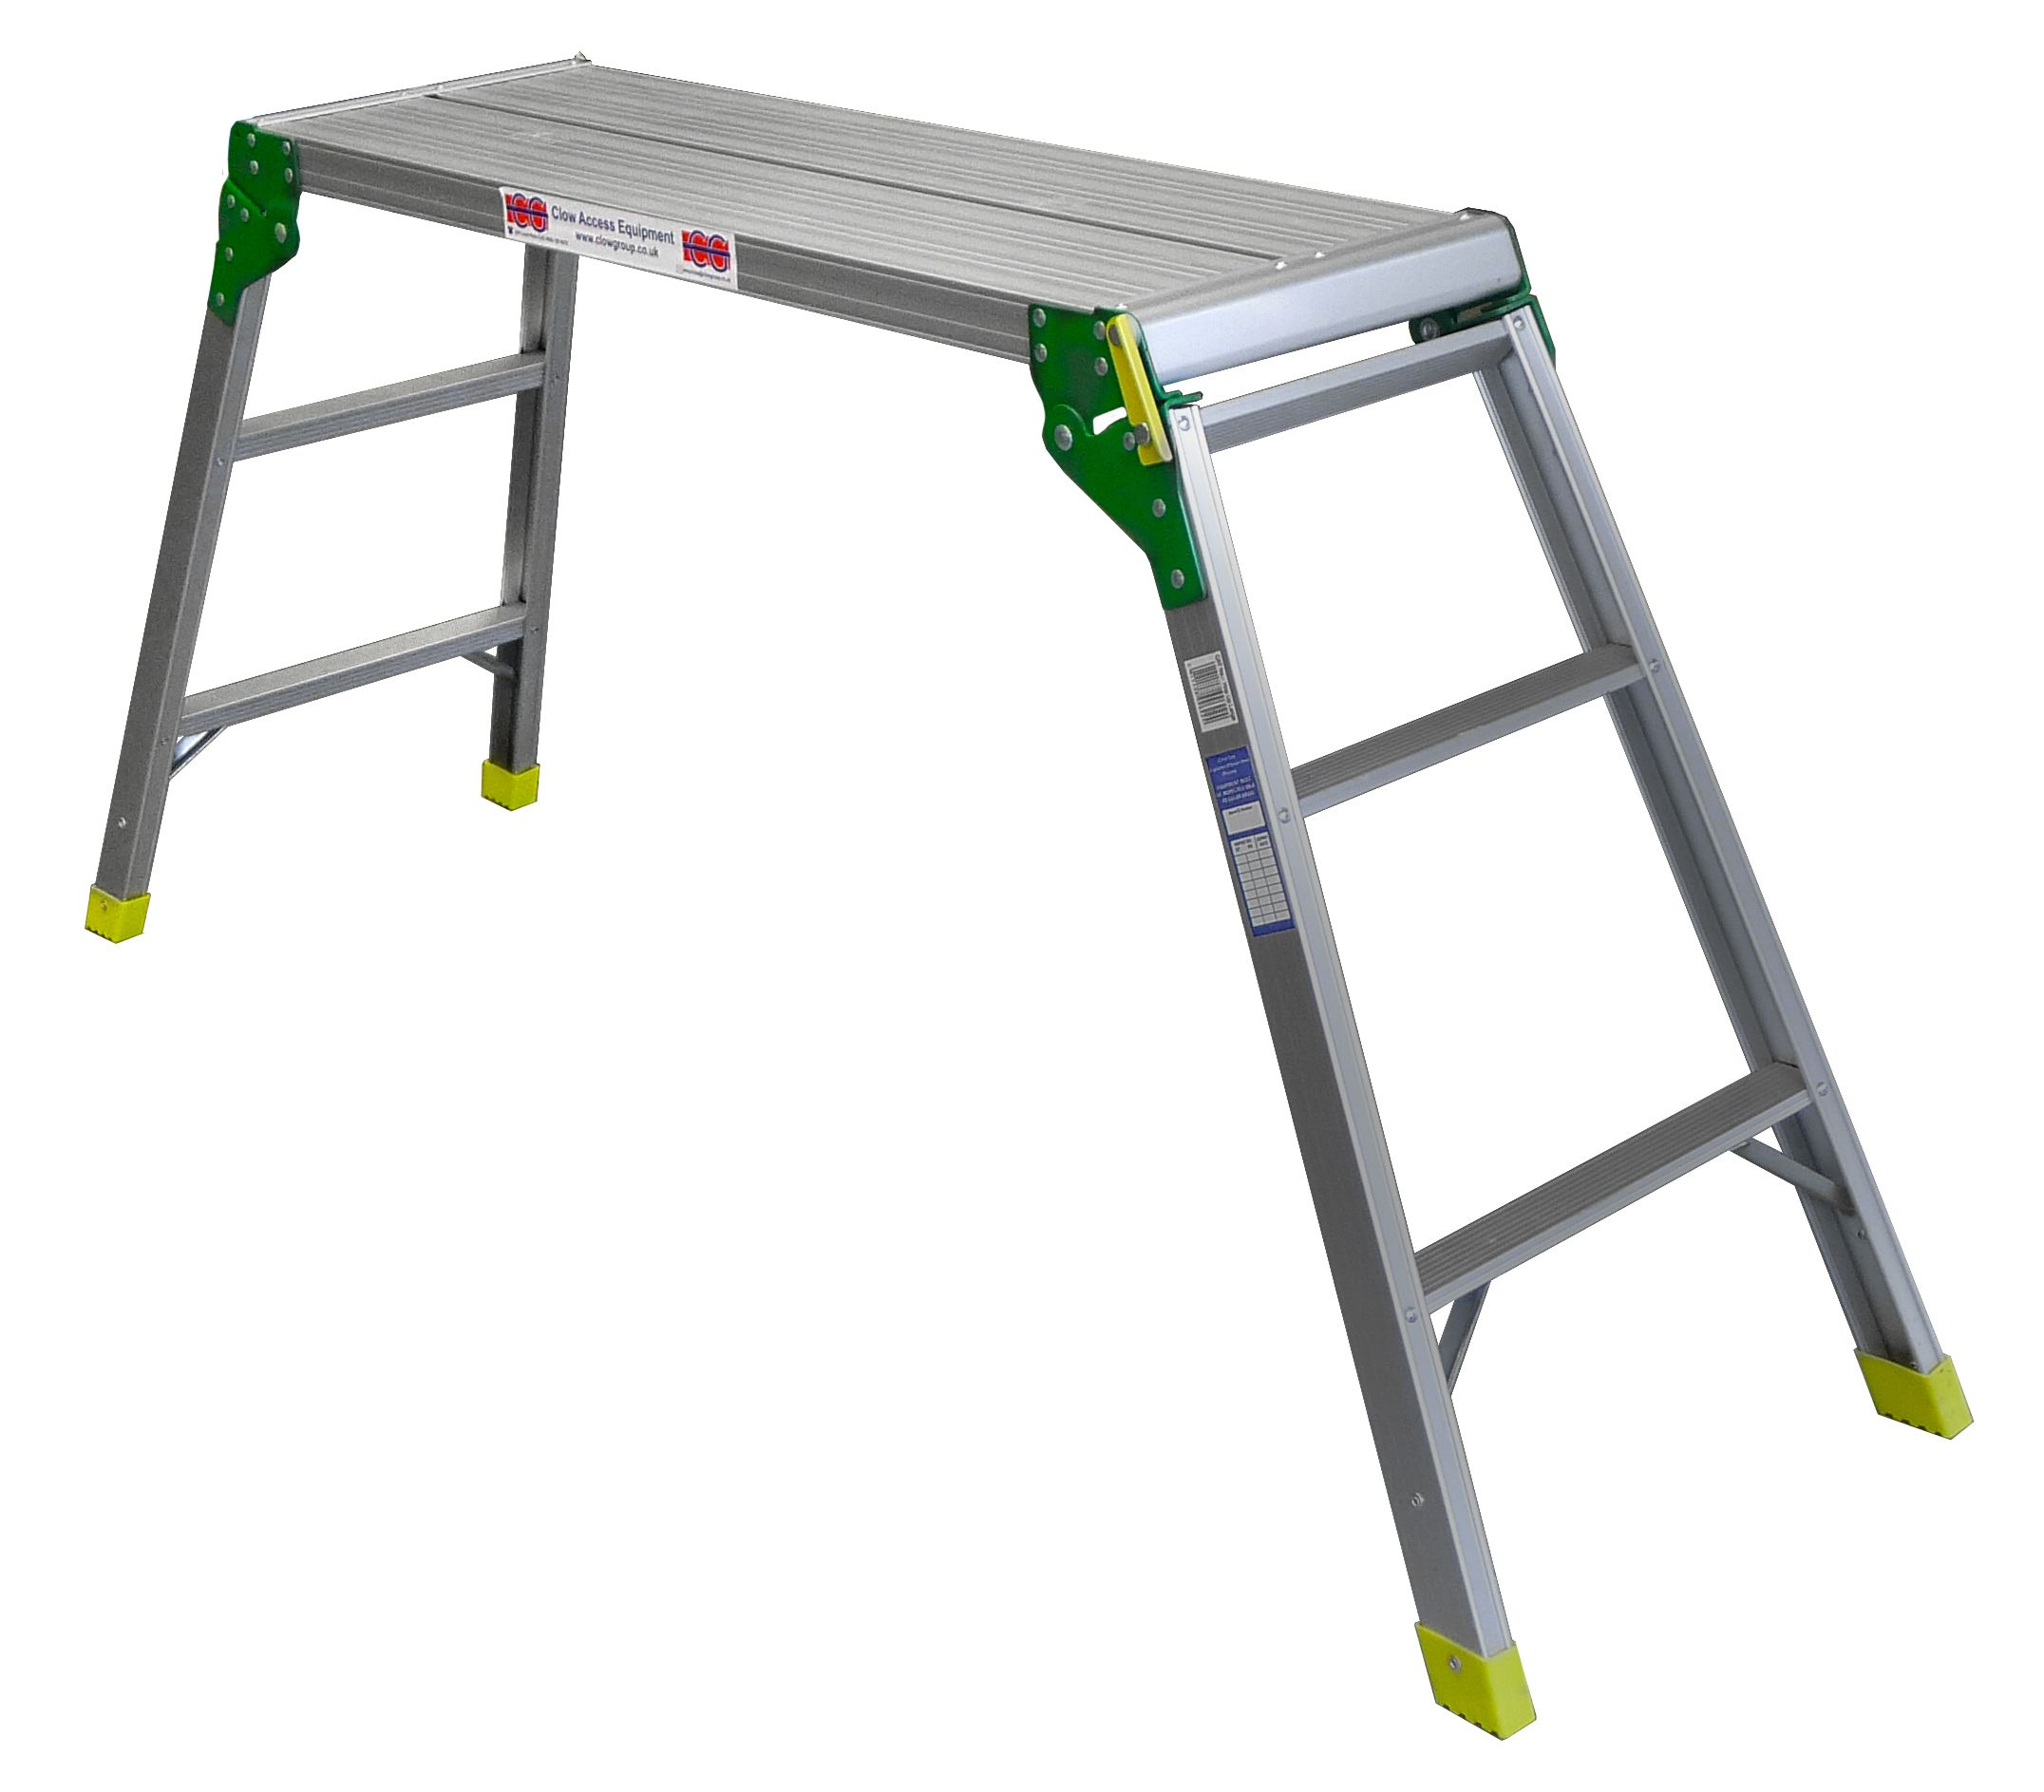 Clow Hop Up Step Bench Work Platform Direct From The Clow Group Step Bench Ladder Work Platform